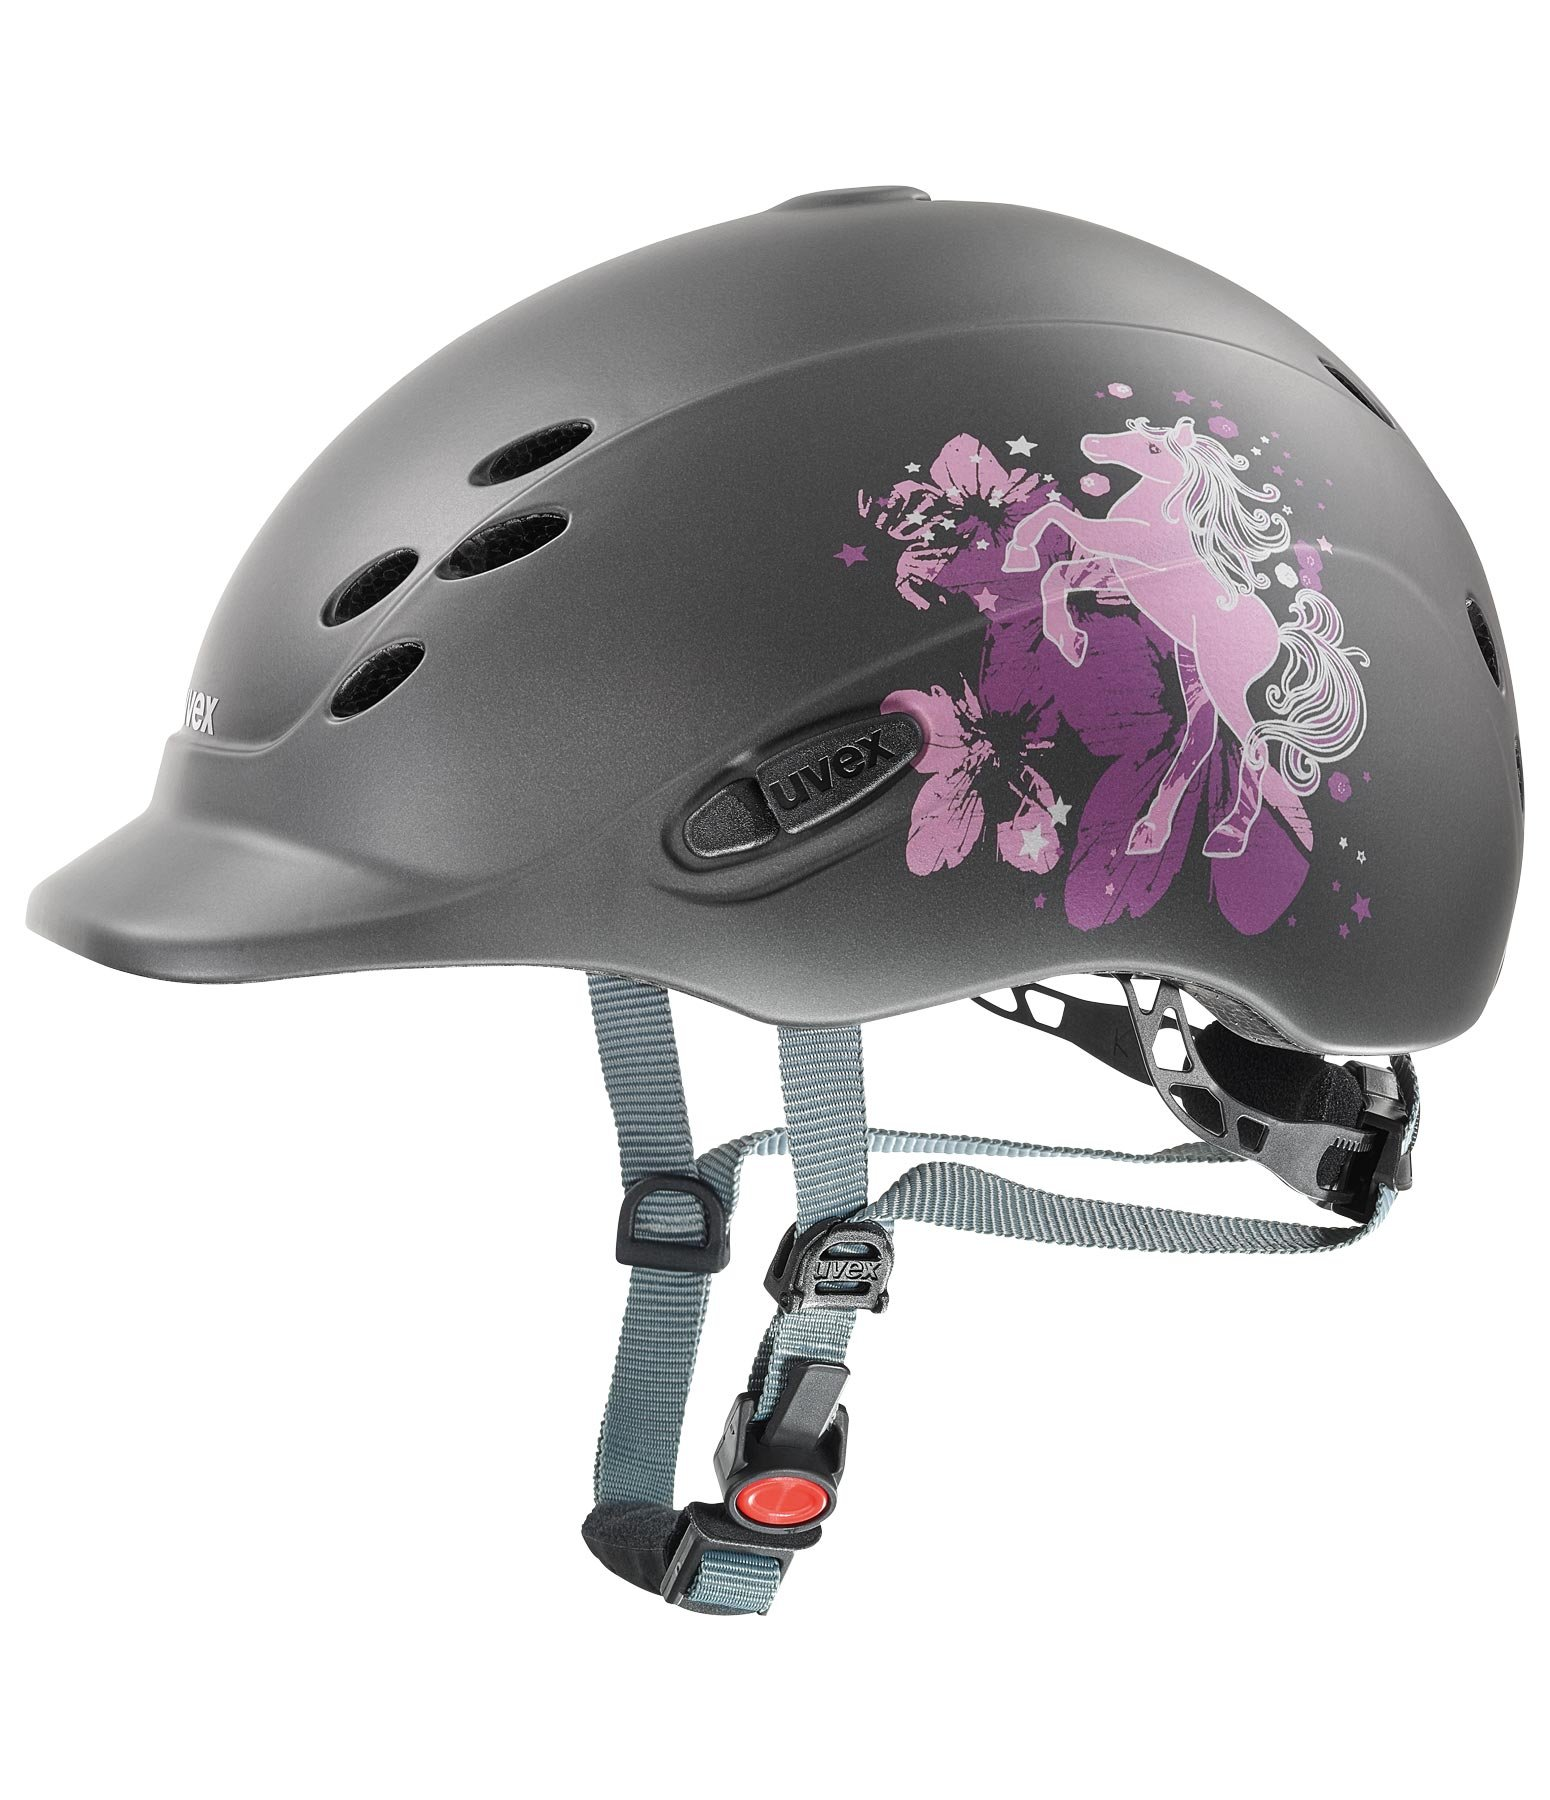 Children's Riding Hat onyxx with Little Pony Design